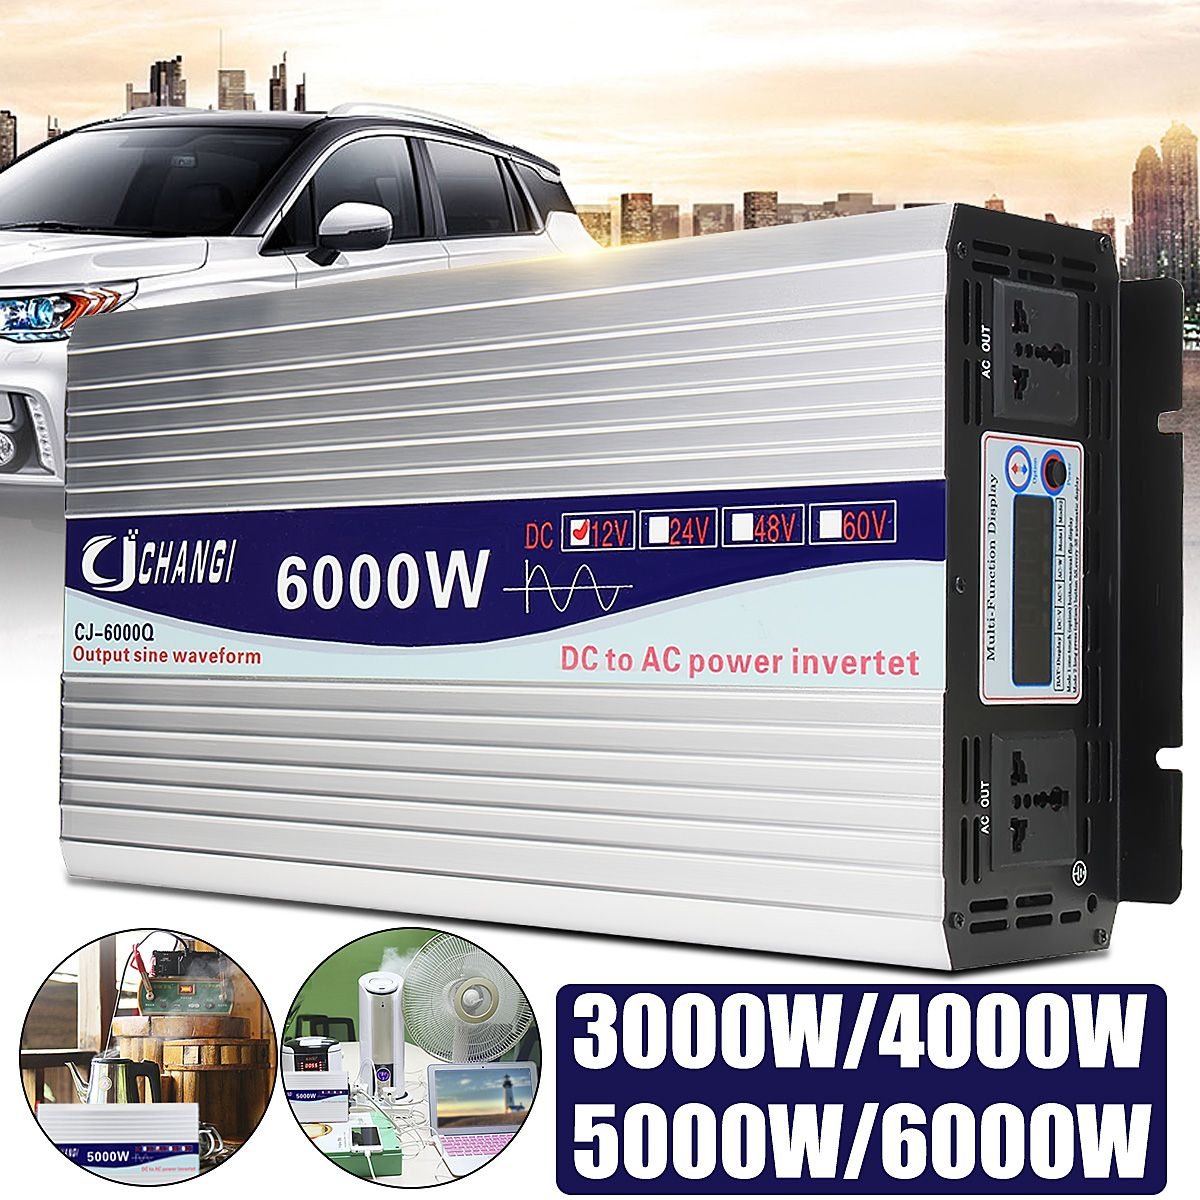 Inverter 12 v zu 220 v 3000/4000/5000/6000 watt Spannung transformator Power Solar Inverter Reine sinus Welle Konverter Adapter LCD Bildschirm